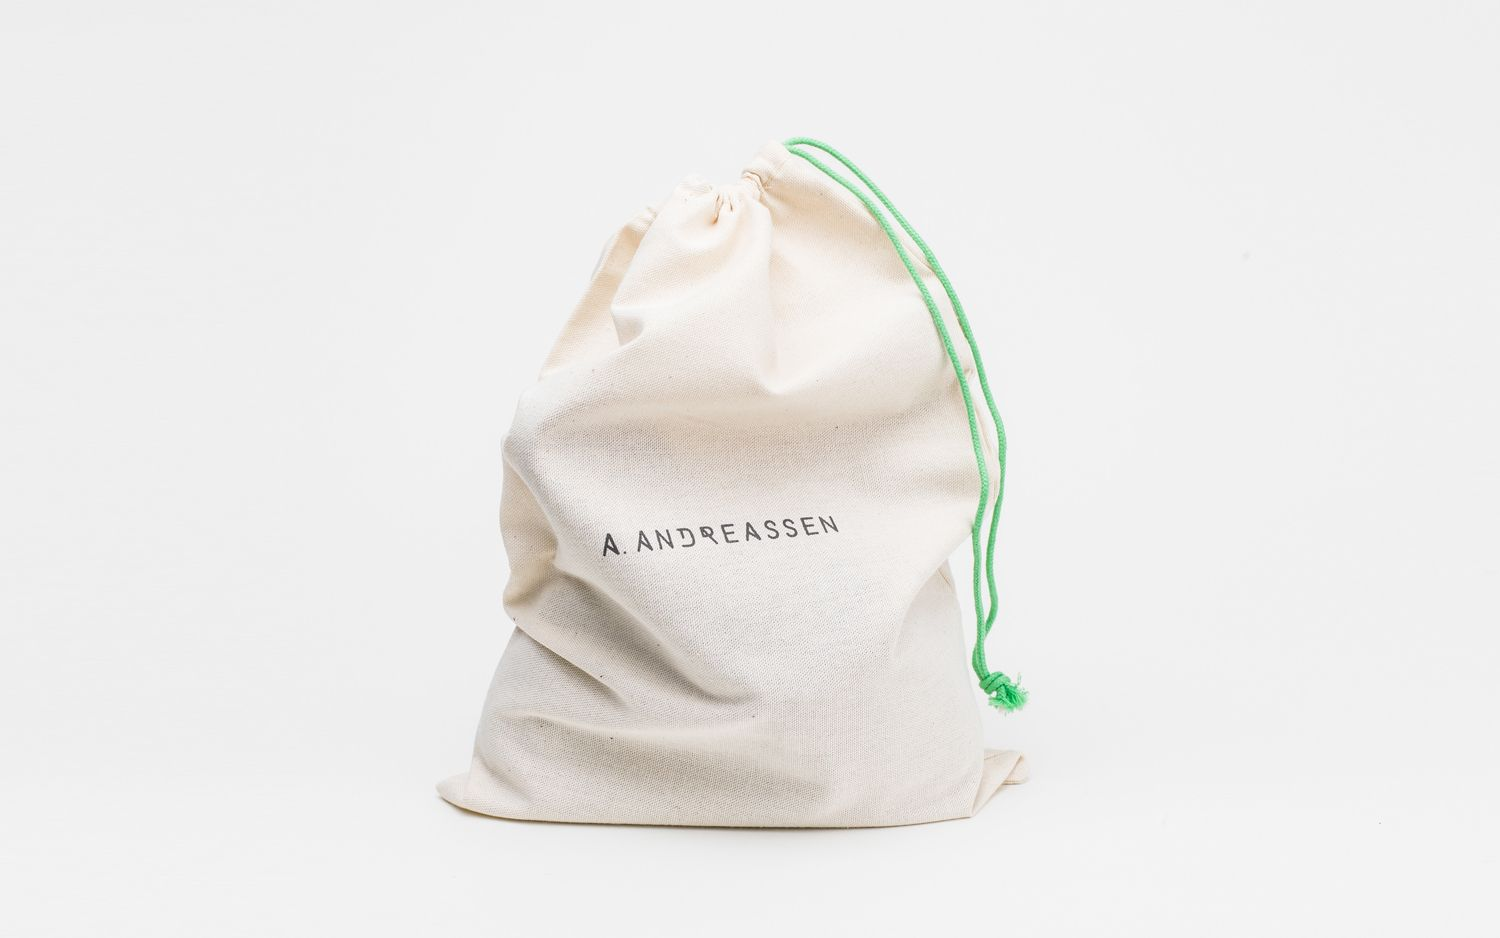 Scandinavian Lifestyle brand identity for a andreassen by bond bp o graphic design